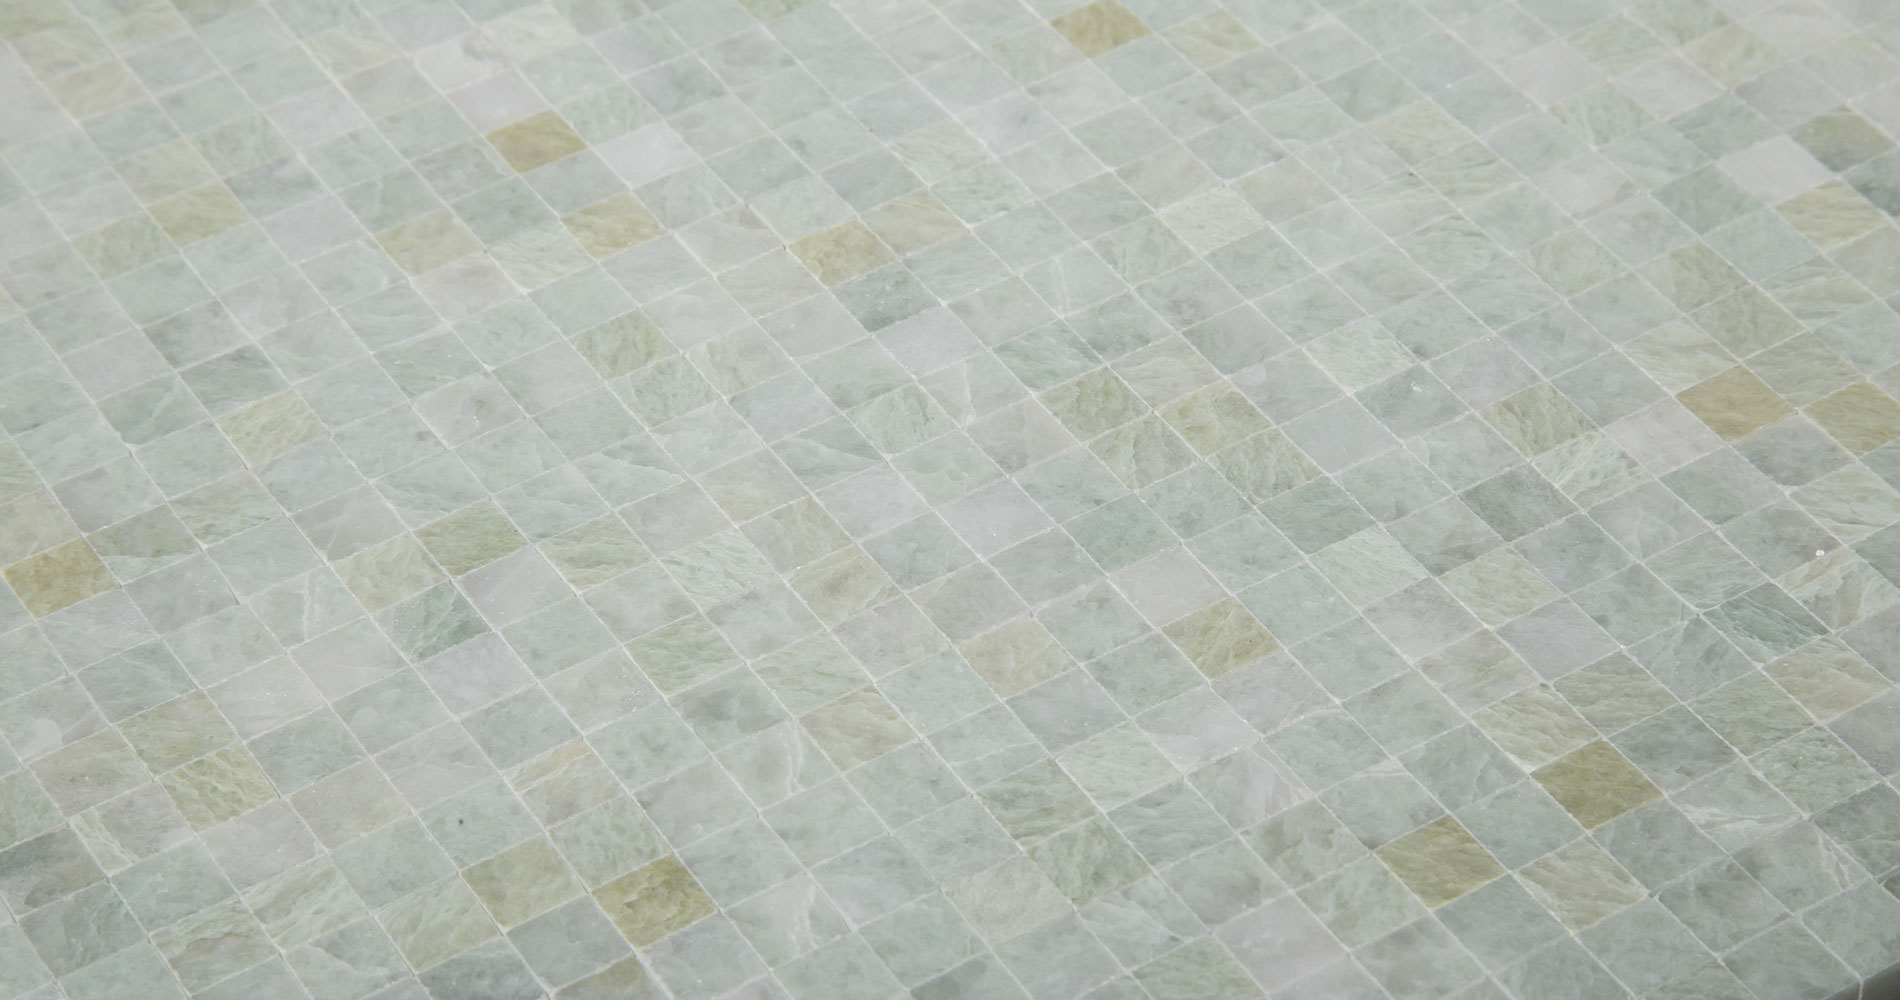 centurymosaic-No-Joint-Ming-Green-Square-(4)